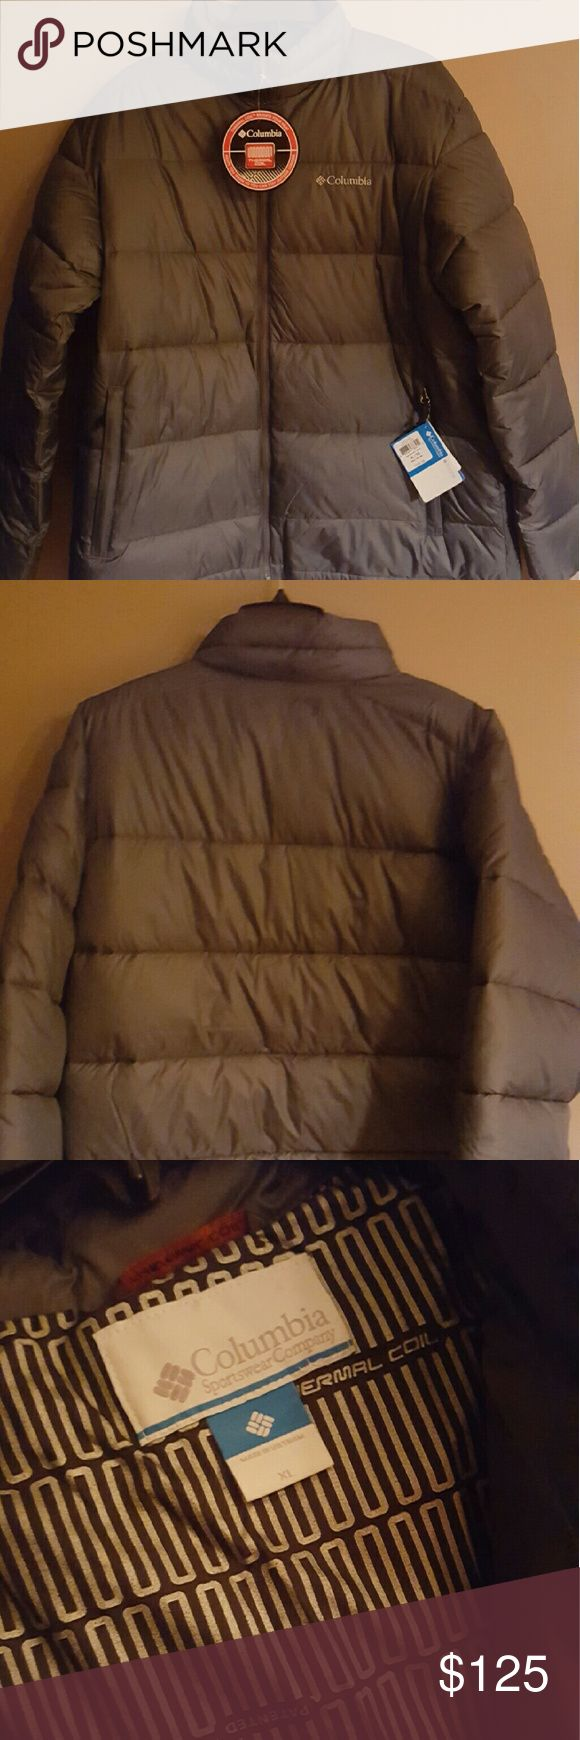 Men's Columbia Coat ( XL ) Brand new with tags. Full zippered front. XL - Men's size Thermal Coil. Cross posted. Columbia  Jackets & Coats Performance Jackets